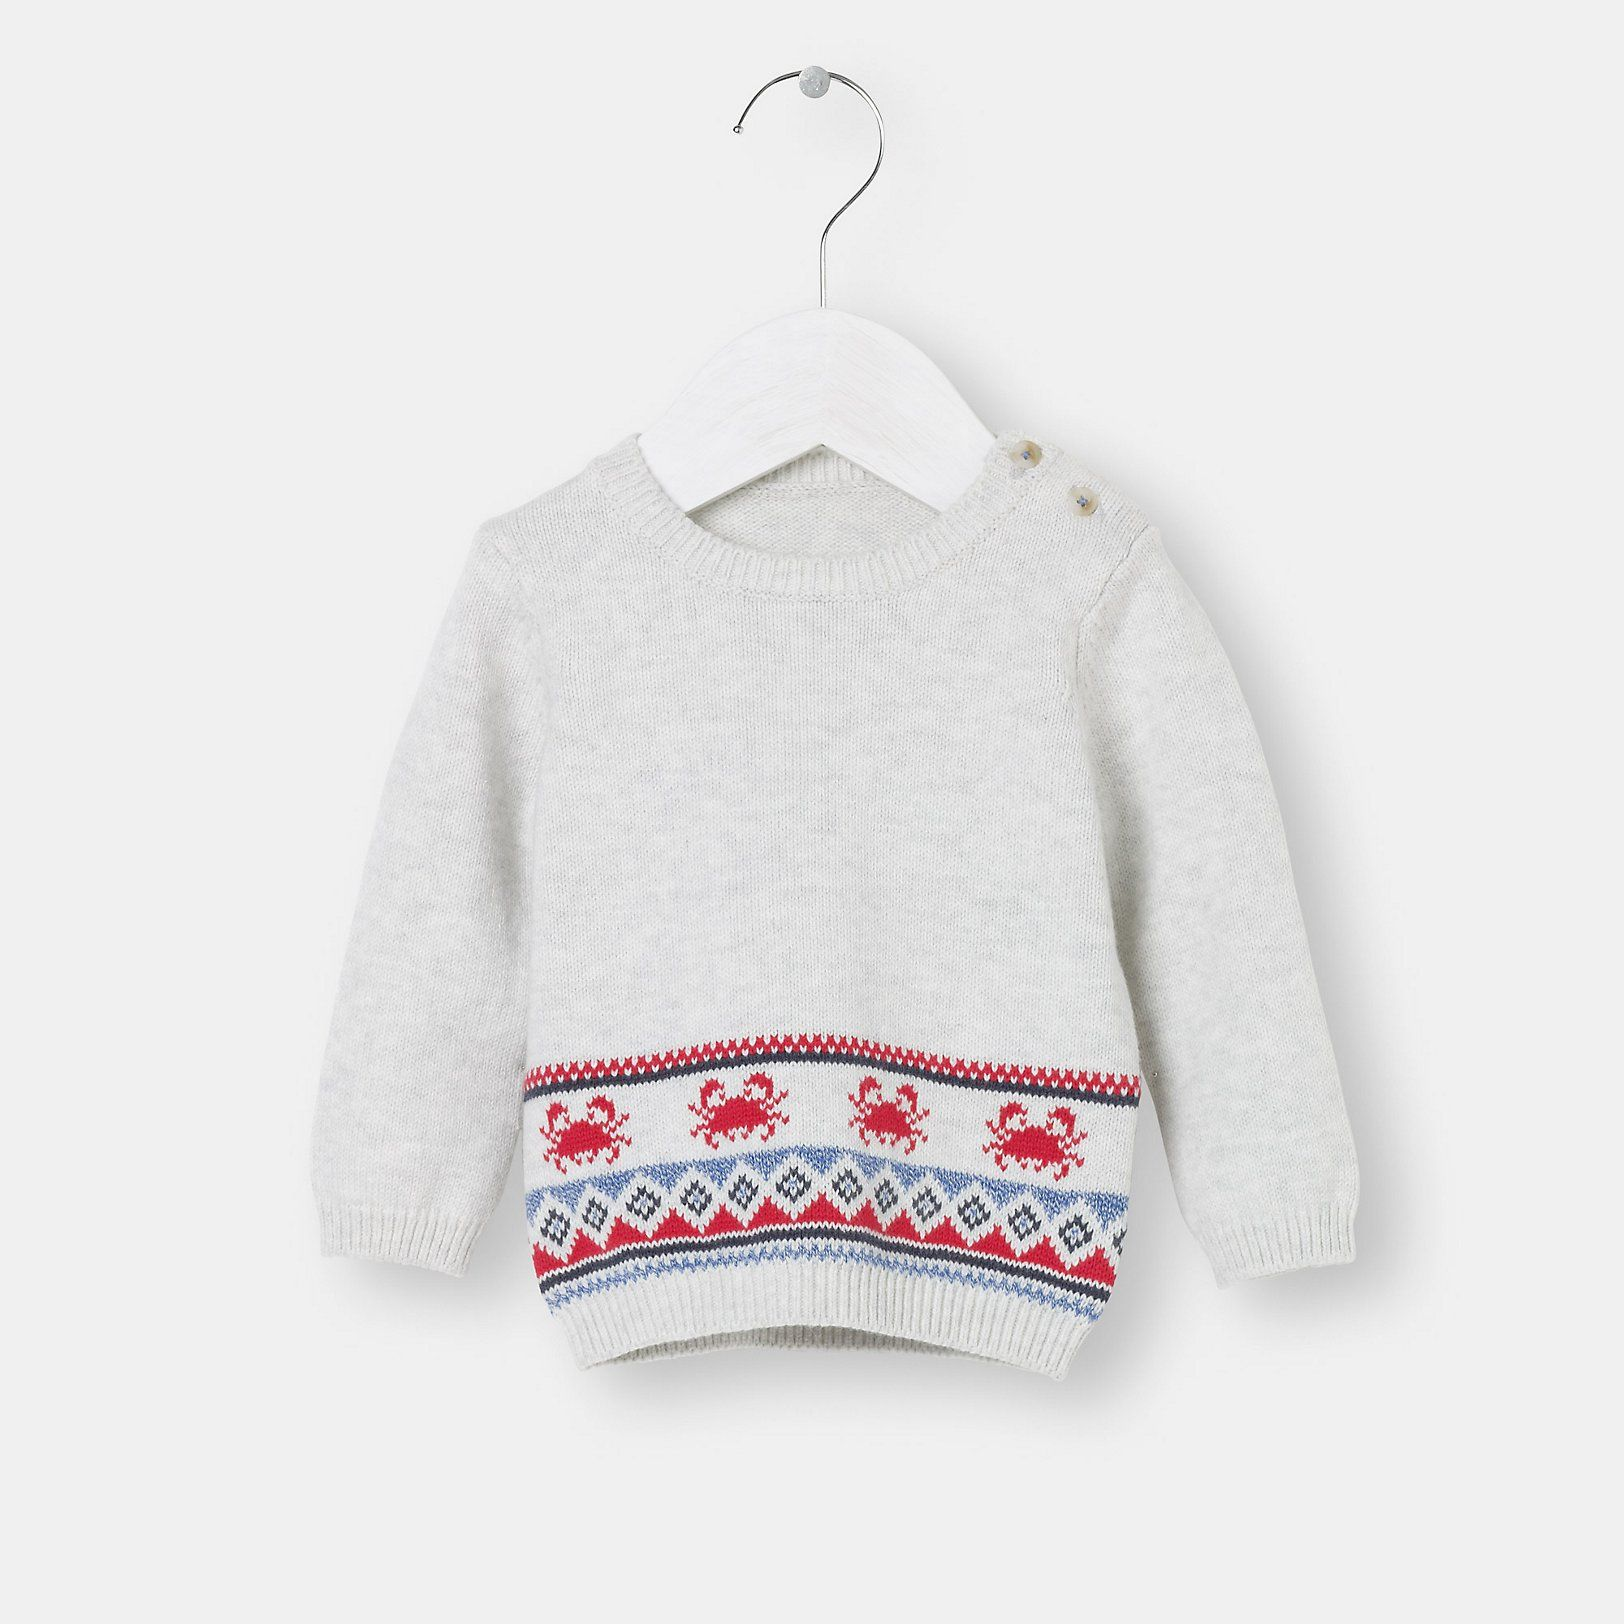 The Little White Company Crab Motif Sweater $46.00 | Prince George ...